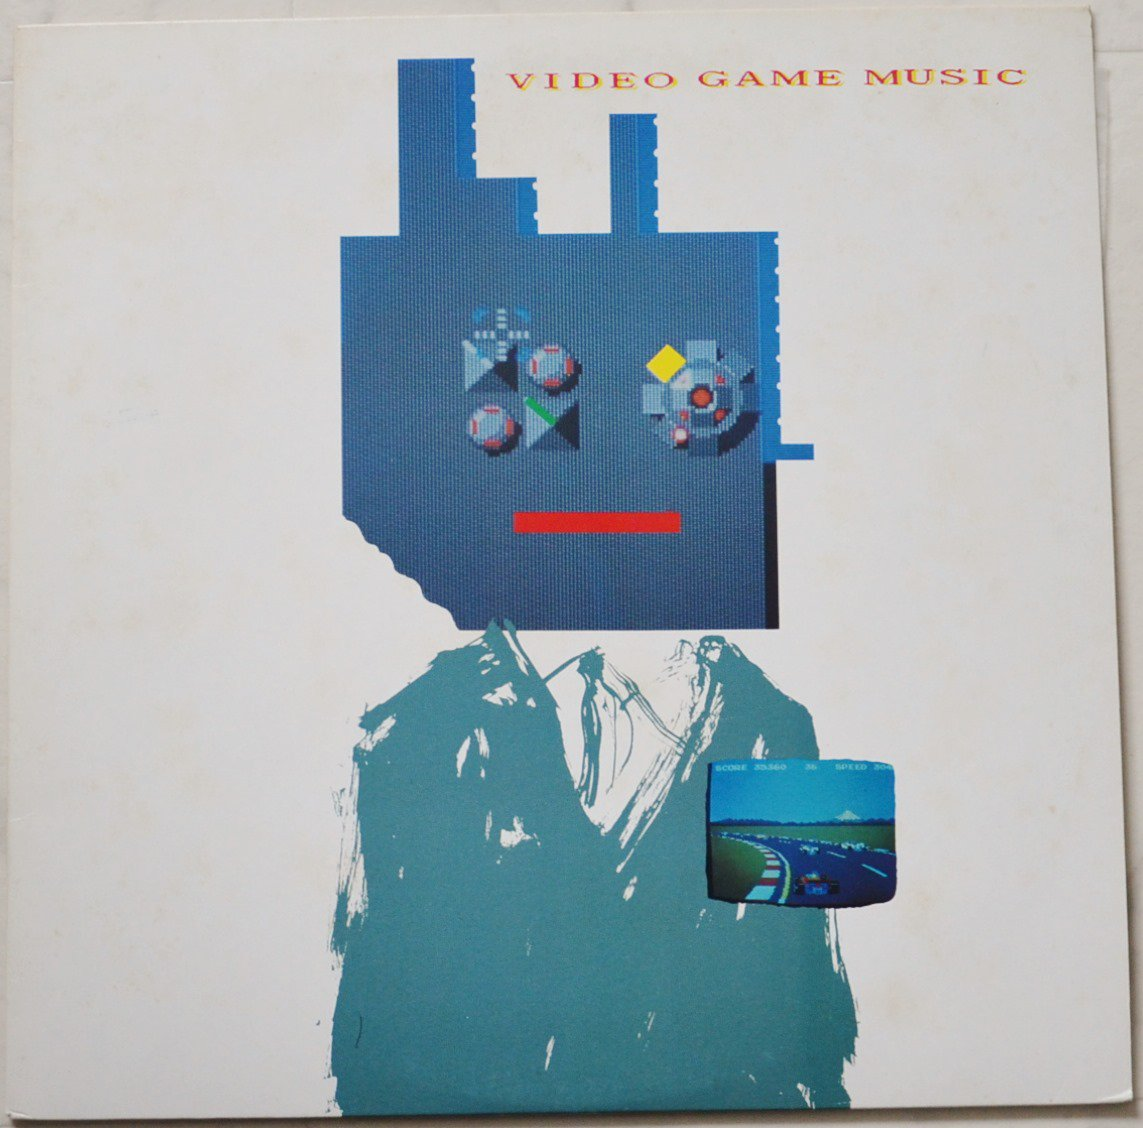 細野晴臣 HARUOMI HOSONO / VIDEO GAME MUSIC (LP)